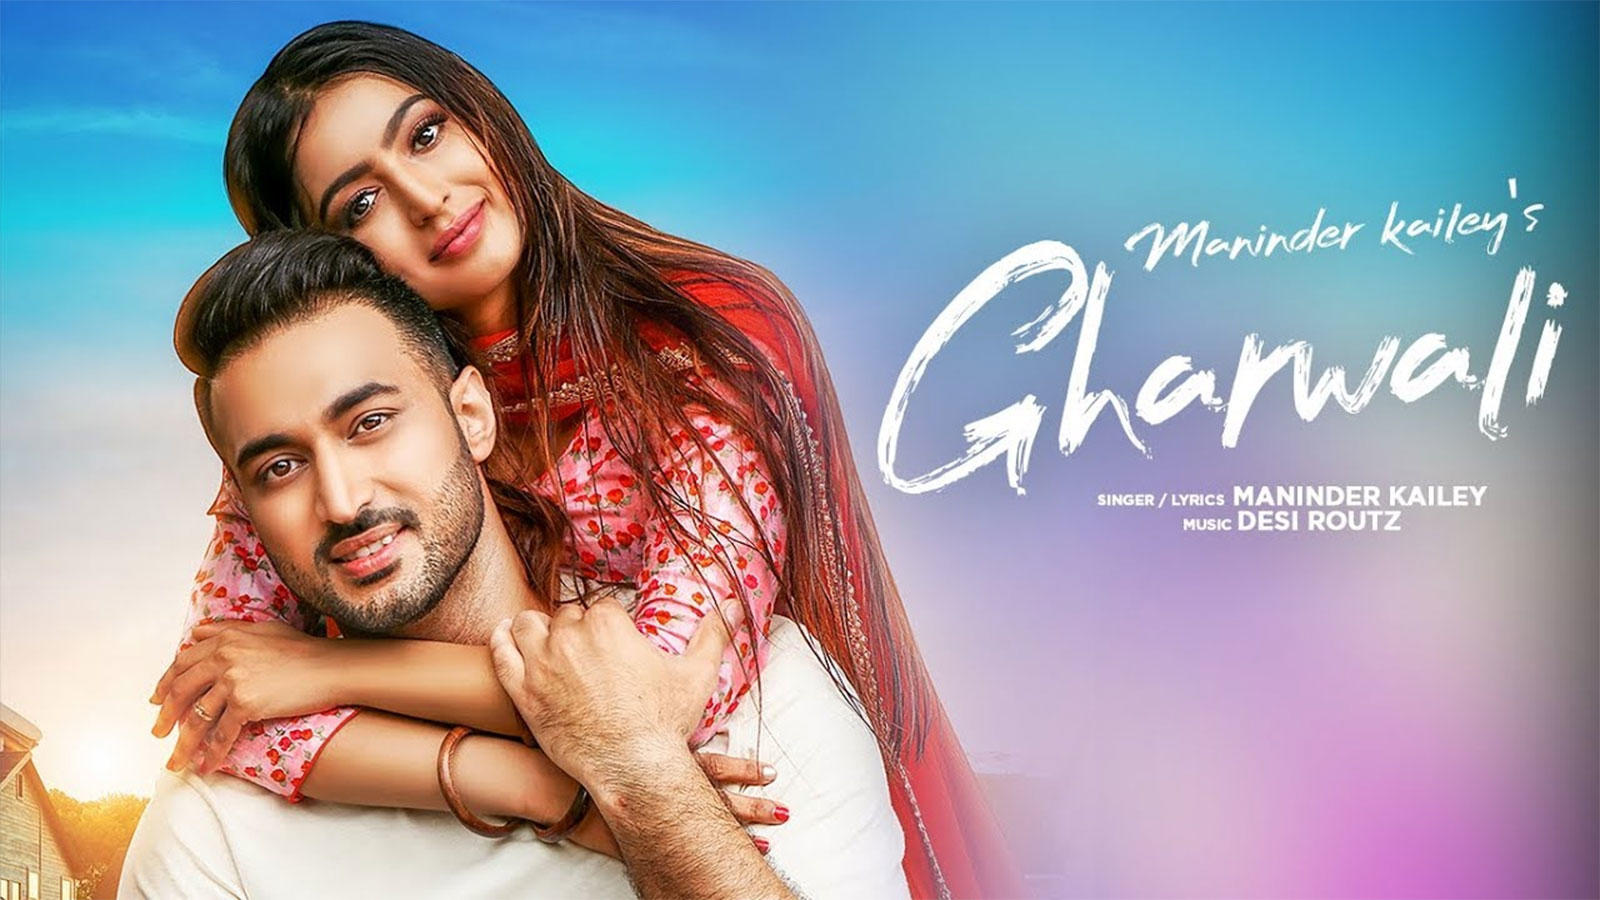 Latest Punjabi Song Gharwali Sung By Maninder Kailey